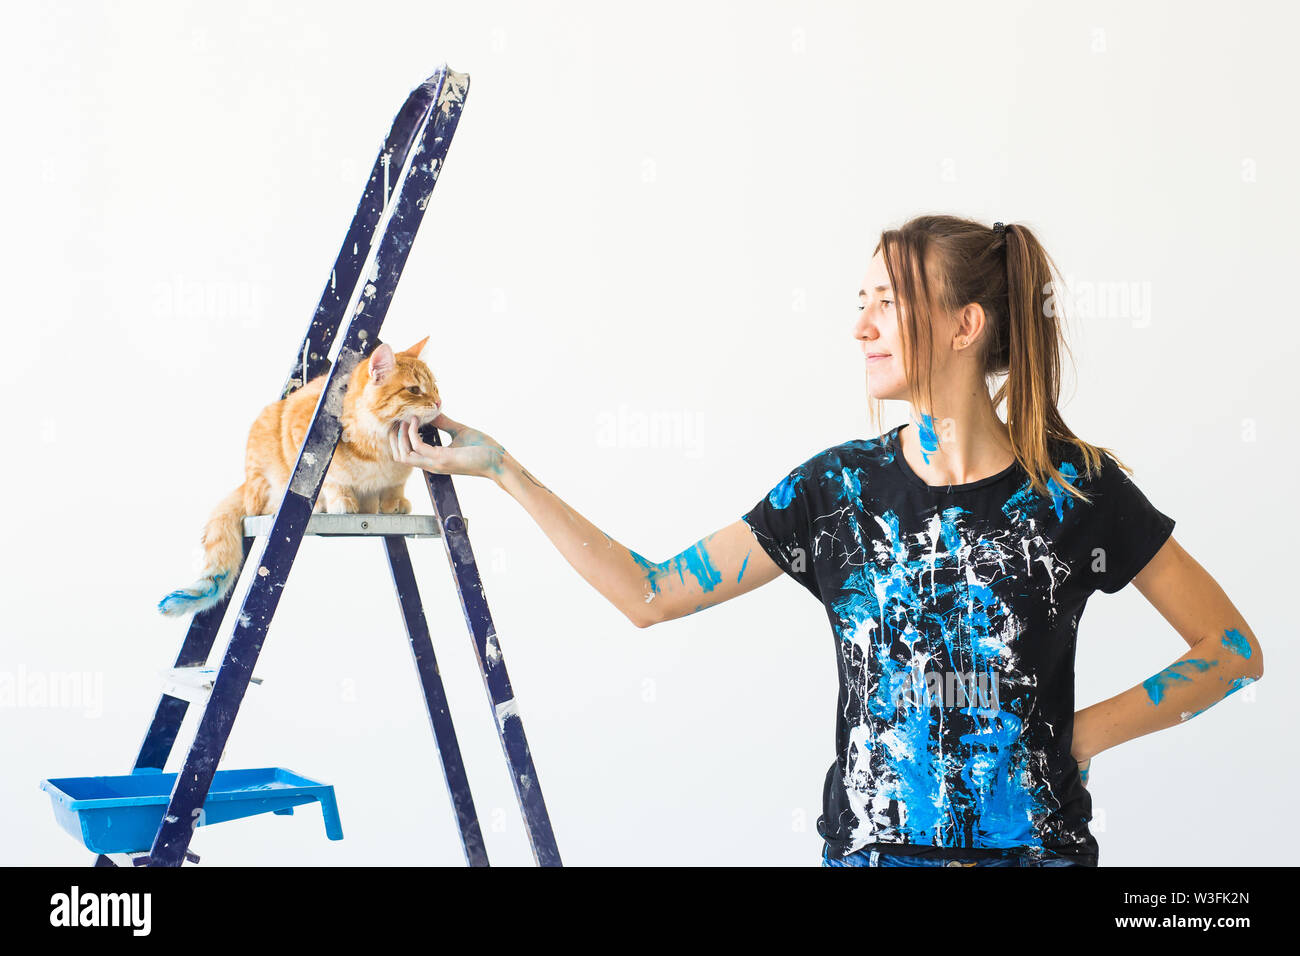 Young woman painter, designer and worker paints the wall. The cat sits next on the ladder and looks at the work - Stock Image